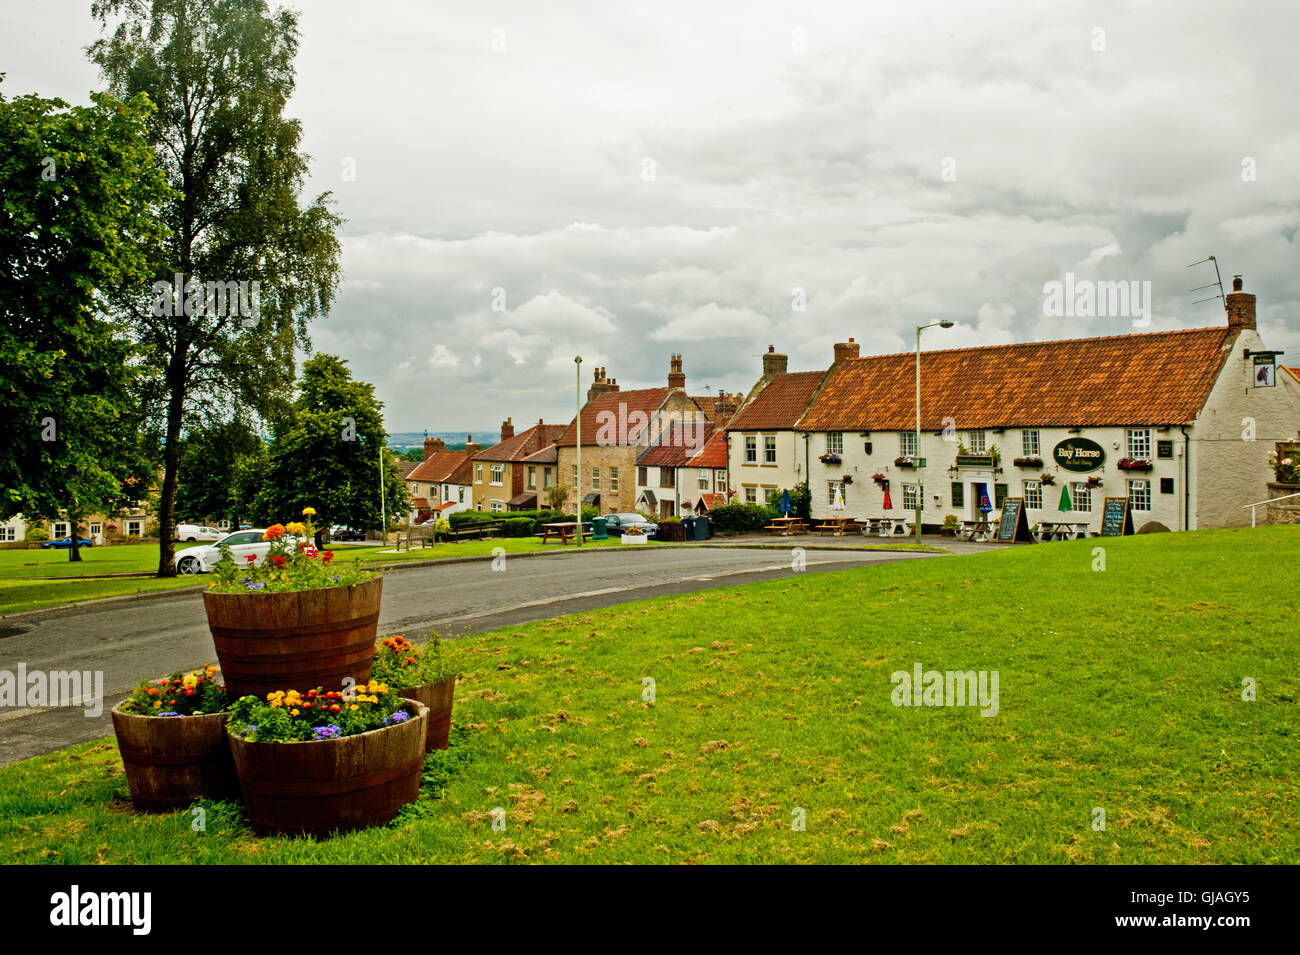 Village Green and The Bay Horse, Heighington, Borough of Darlington - Stock Image